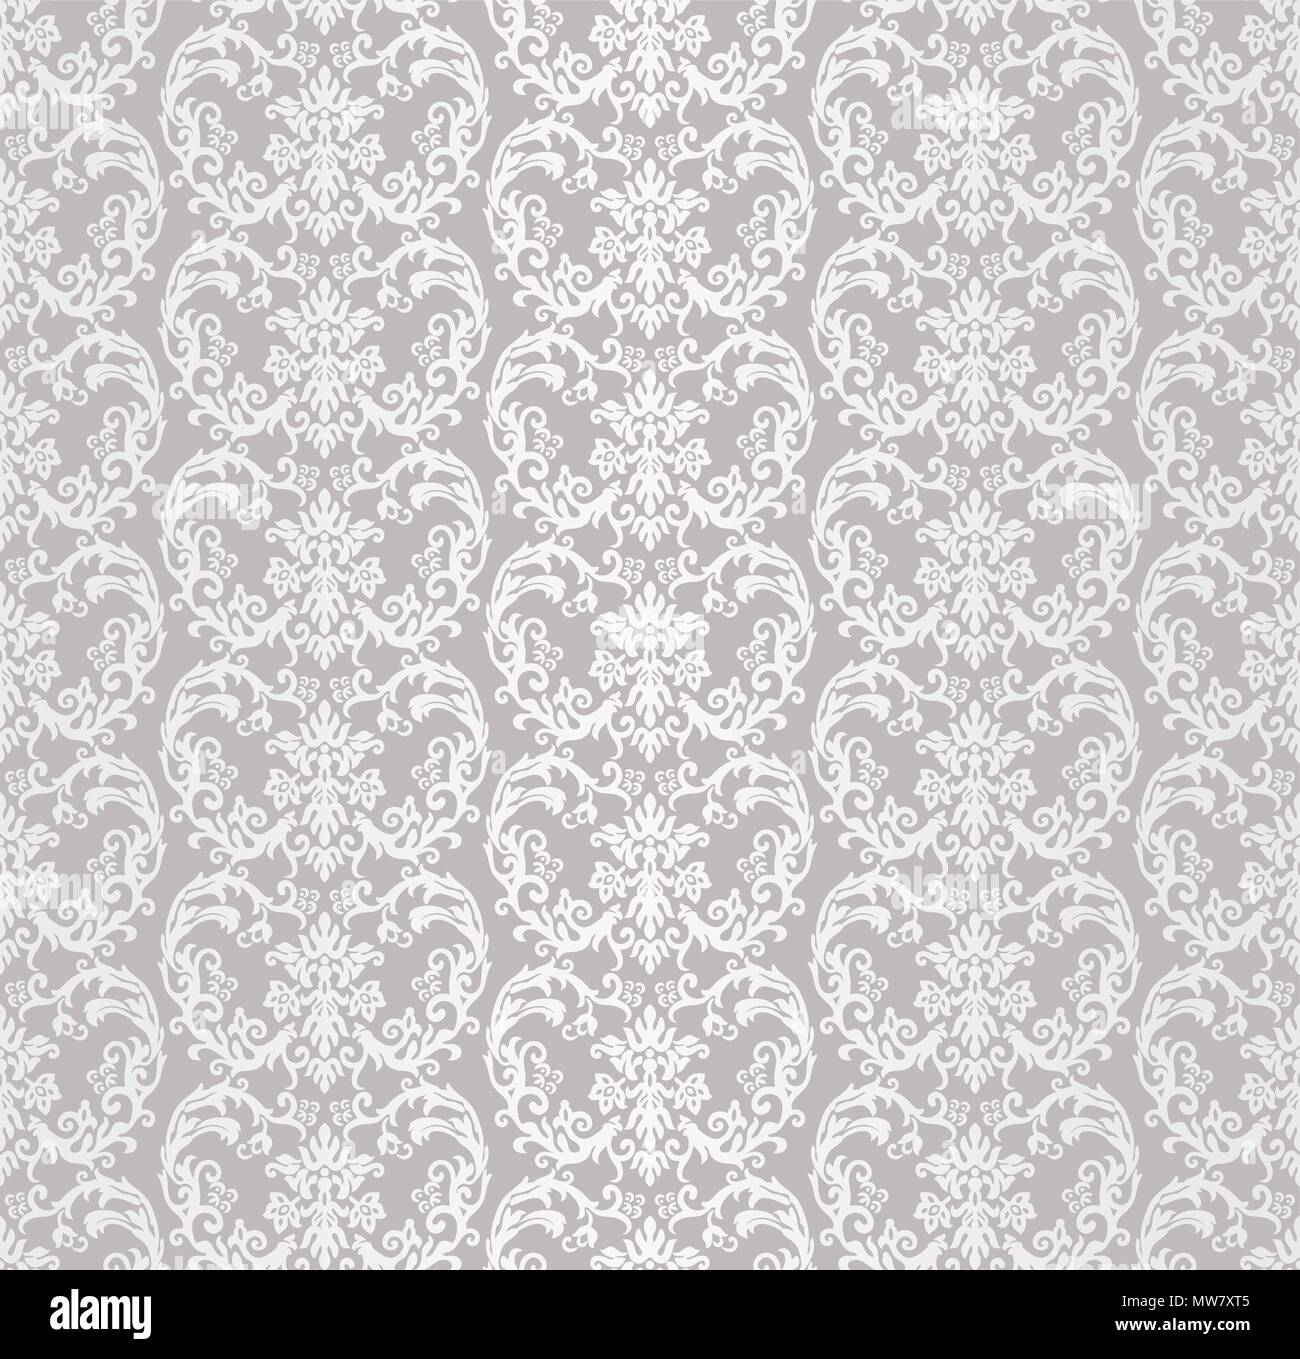 Silver Seamless Victorian Style Floral Wallpaper Pattern This